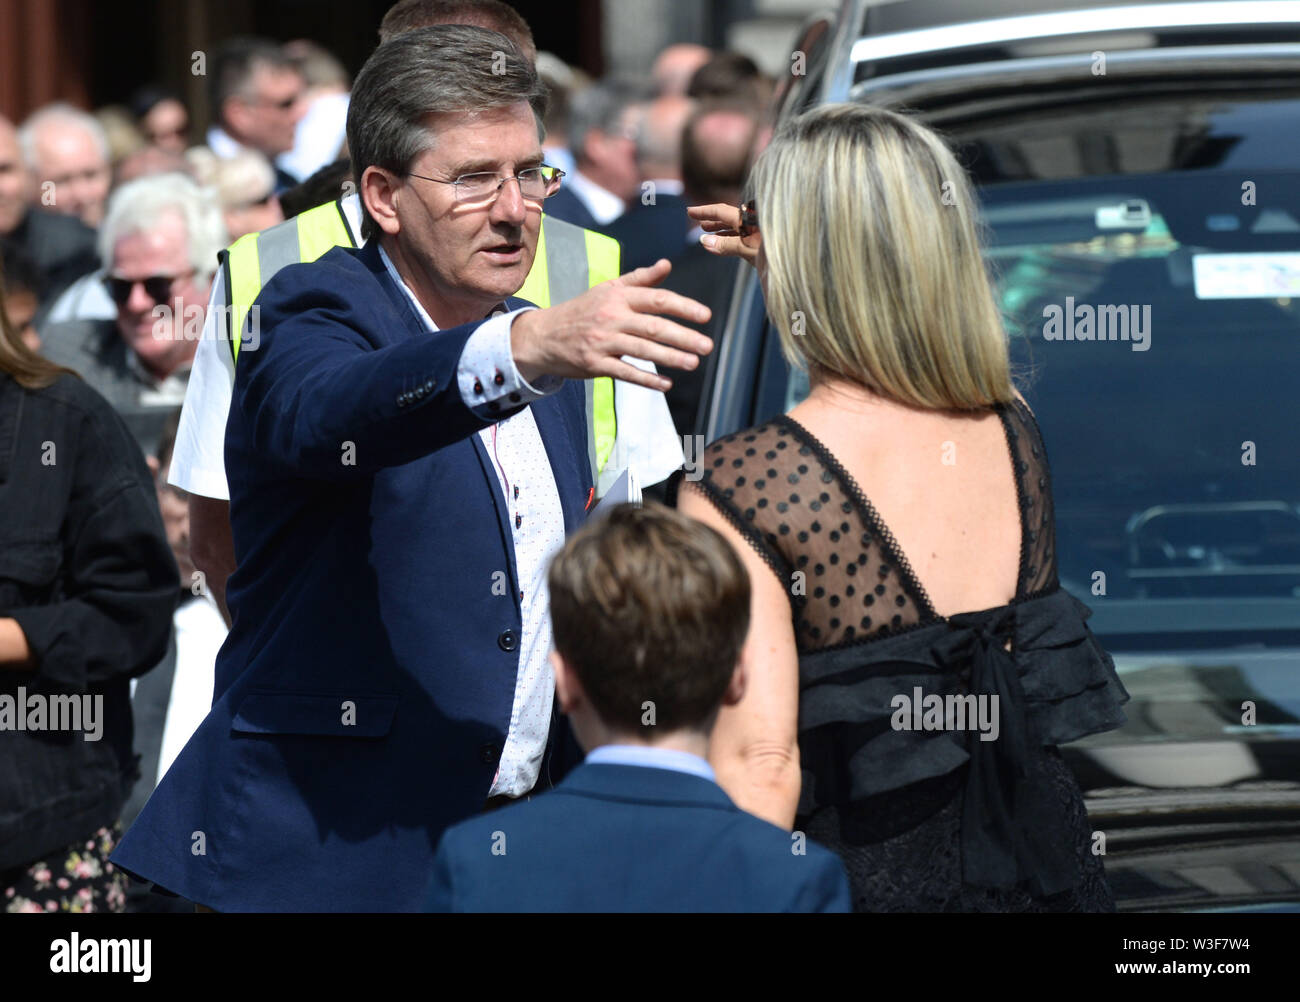 Daniel O'Donnell arrives for the funeral of Father Ted star Brendan Grace at the Church of St. Nicholas of Myra, Dublin. - Stock Image